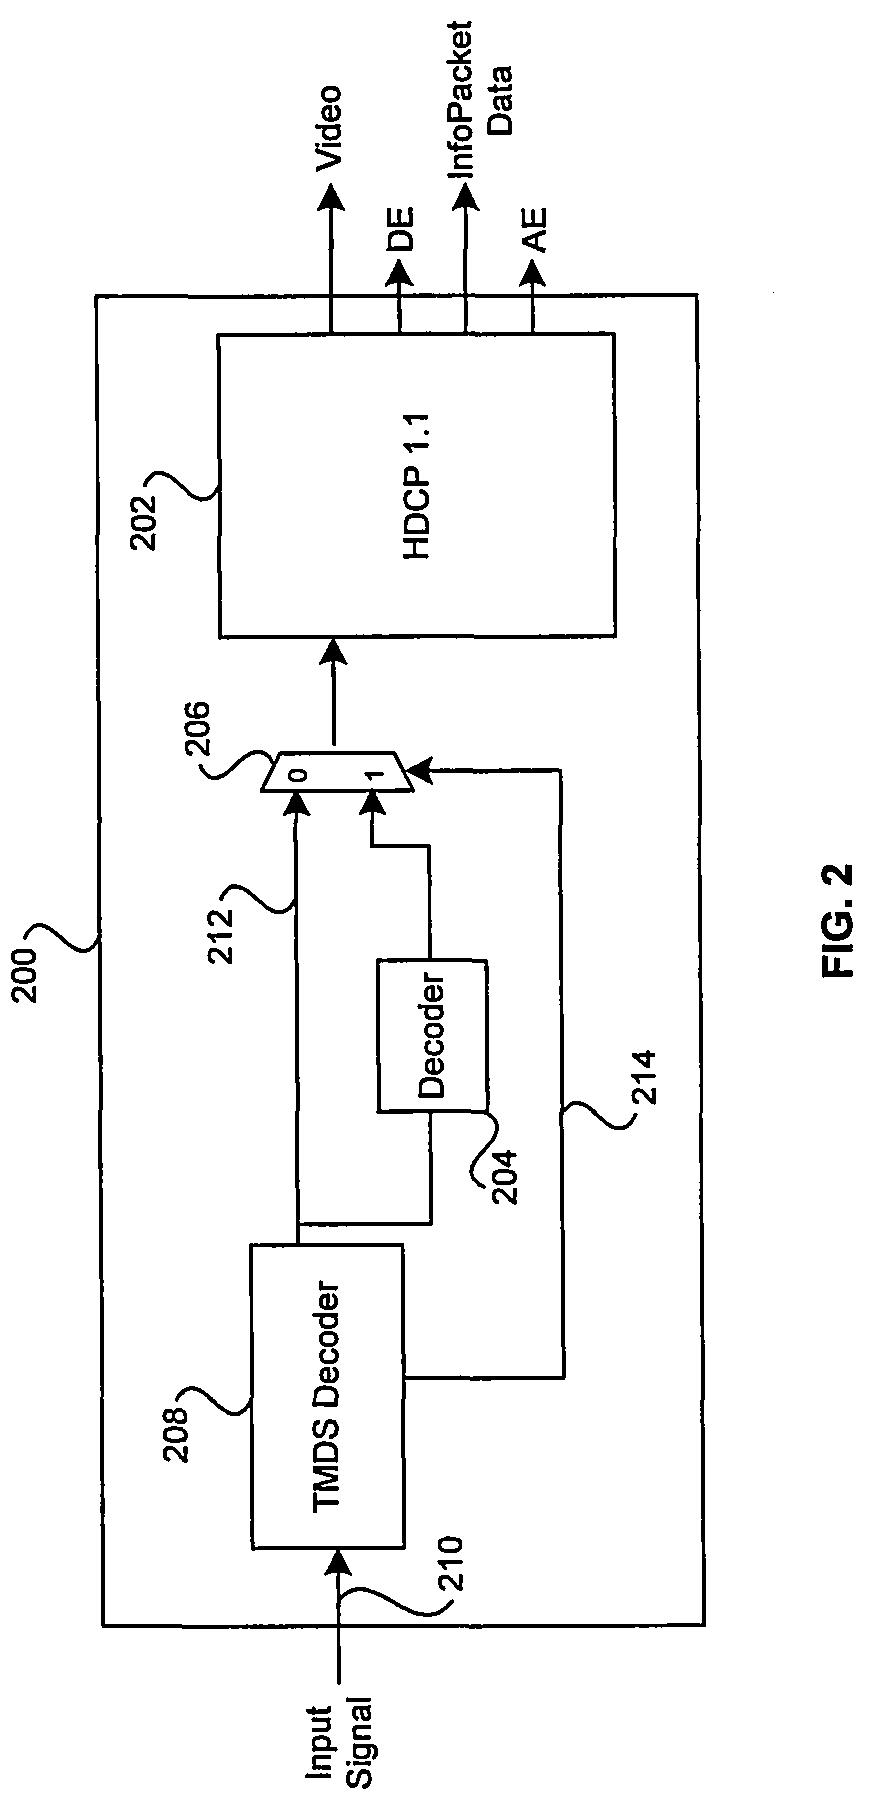 US8378860B2 - Method and system for generating high definition multimedia interface (HDMI) codewords using a TMDS encoder/decoder         - Google PatentsFamily